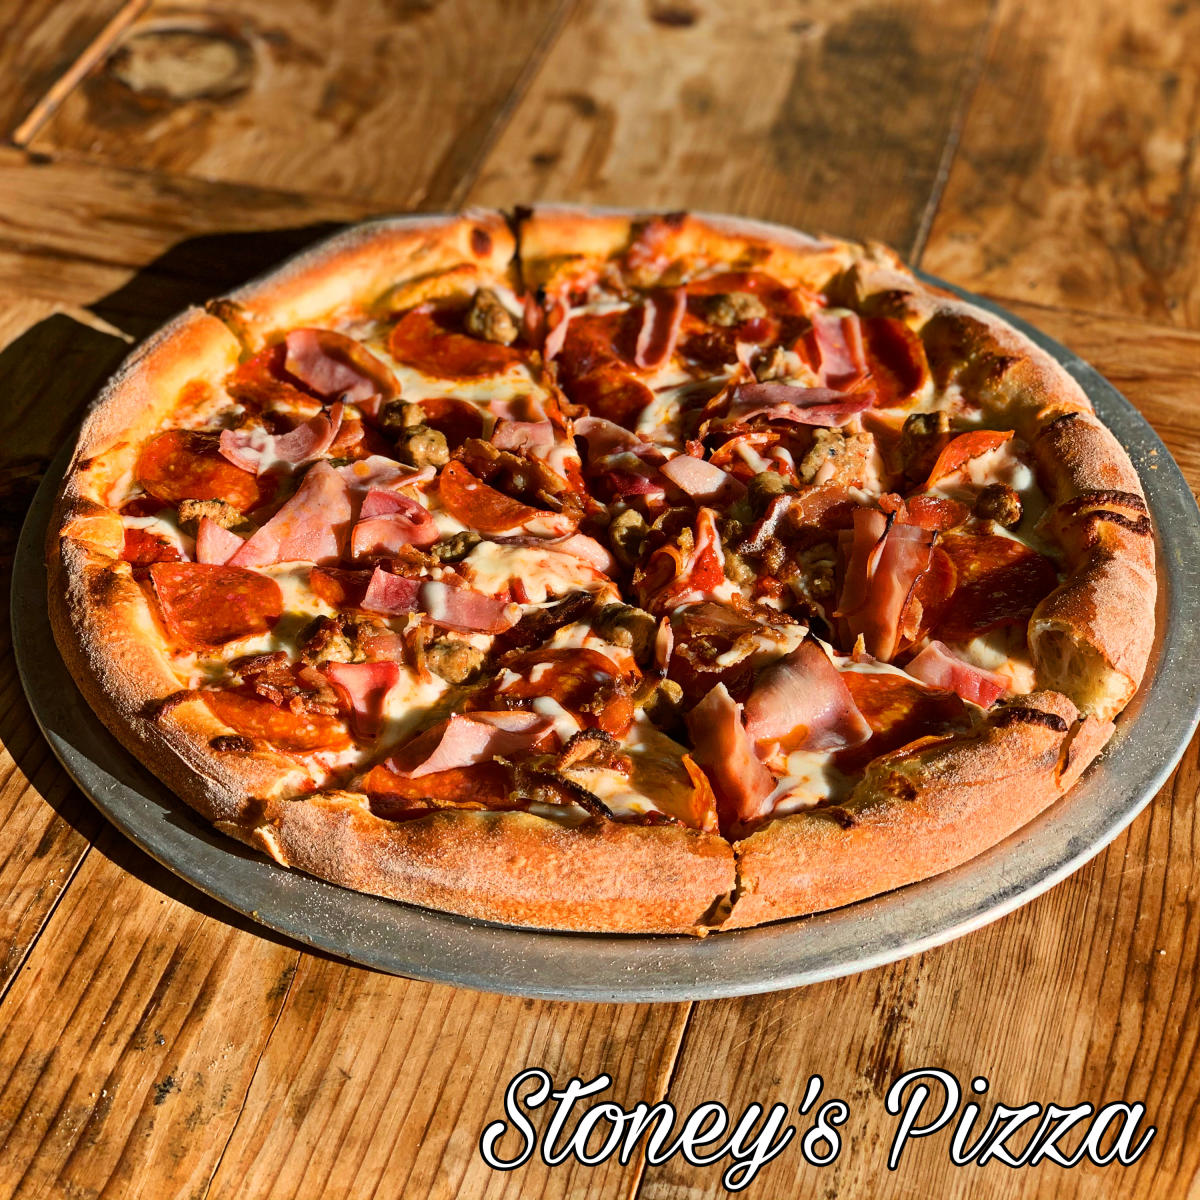 Stoney's Pizza in Sunset Beach